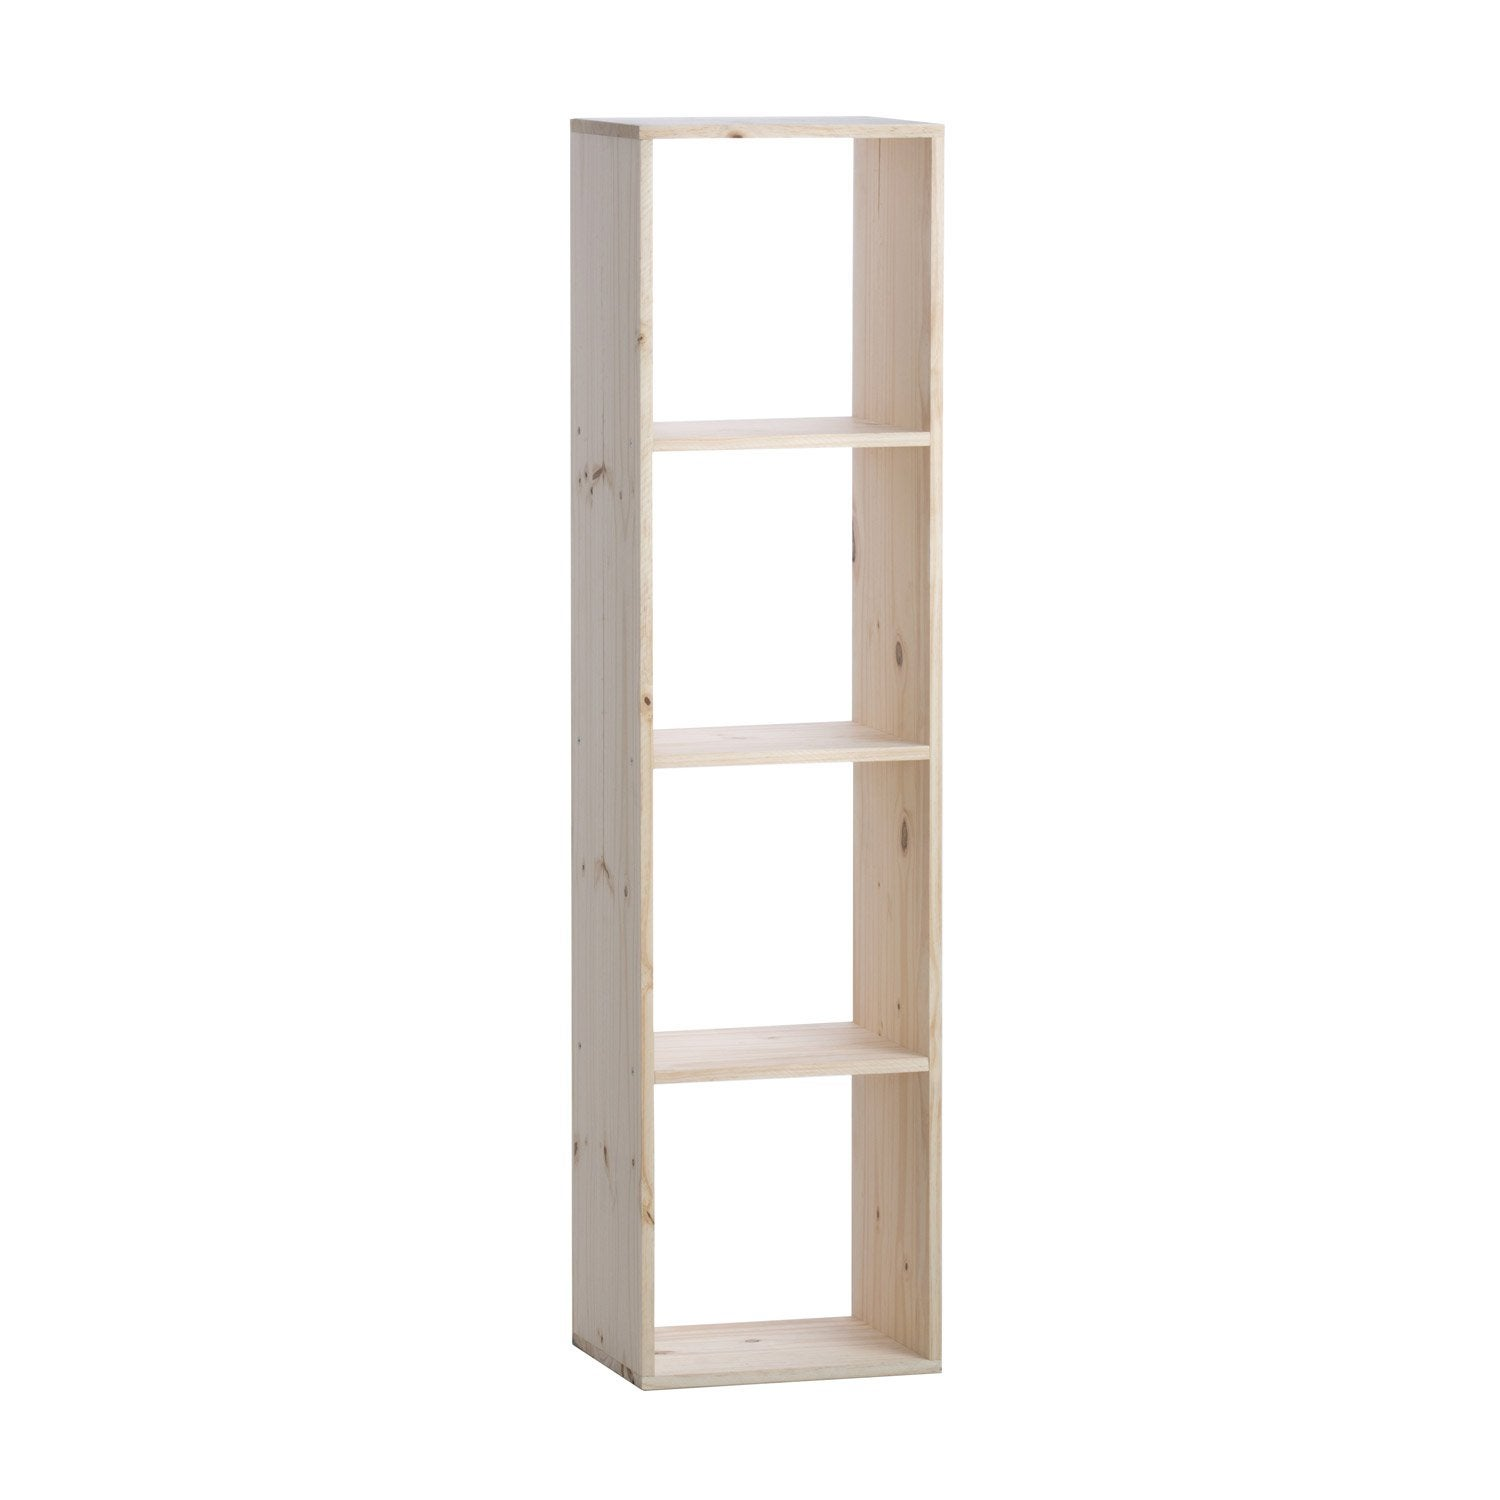 Etag re 4 cases multikaz pin x x cm - Etagere modulable leroy merlin ...